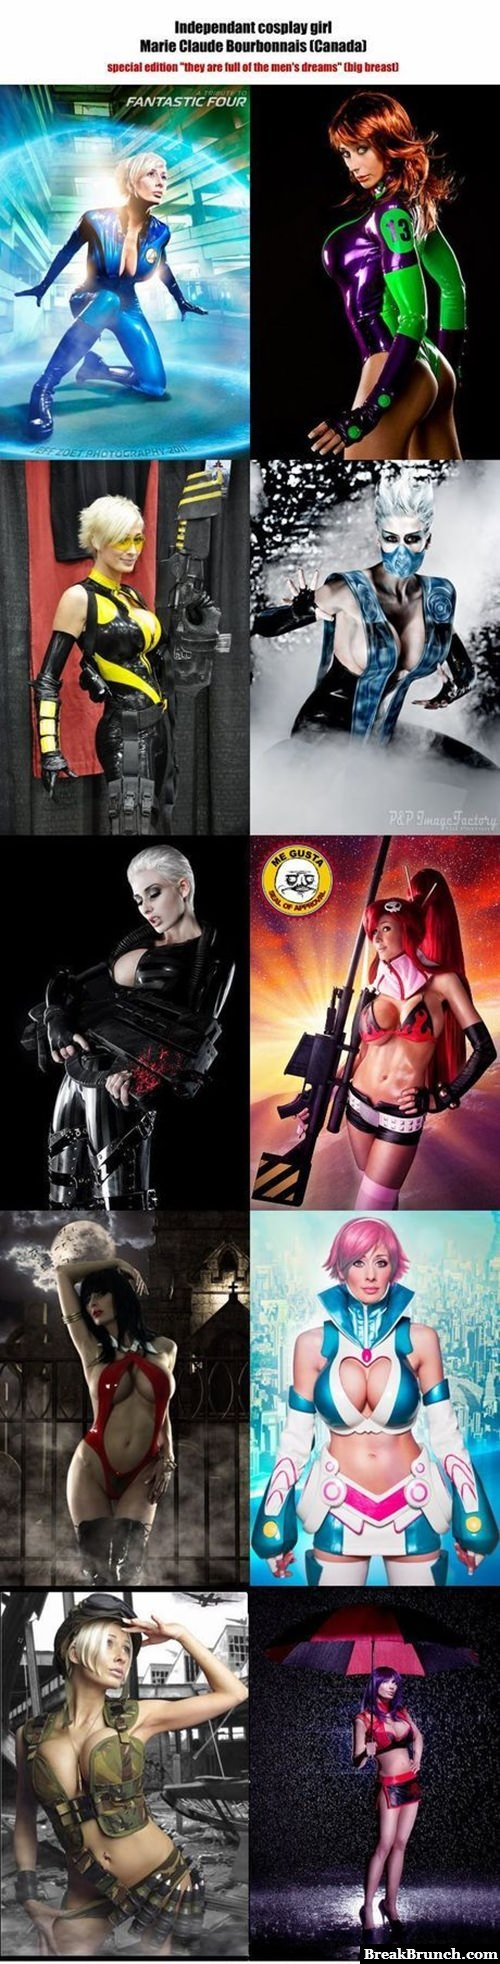 Awesome cosplay by Marie-Claude Bourbonnais